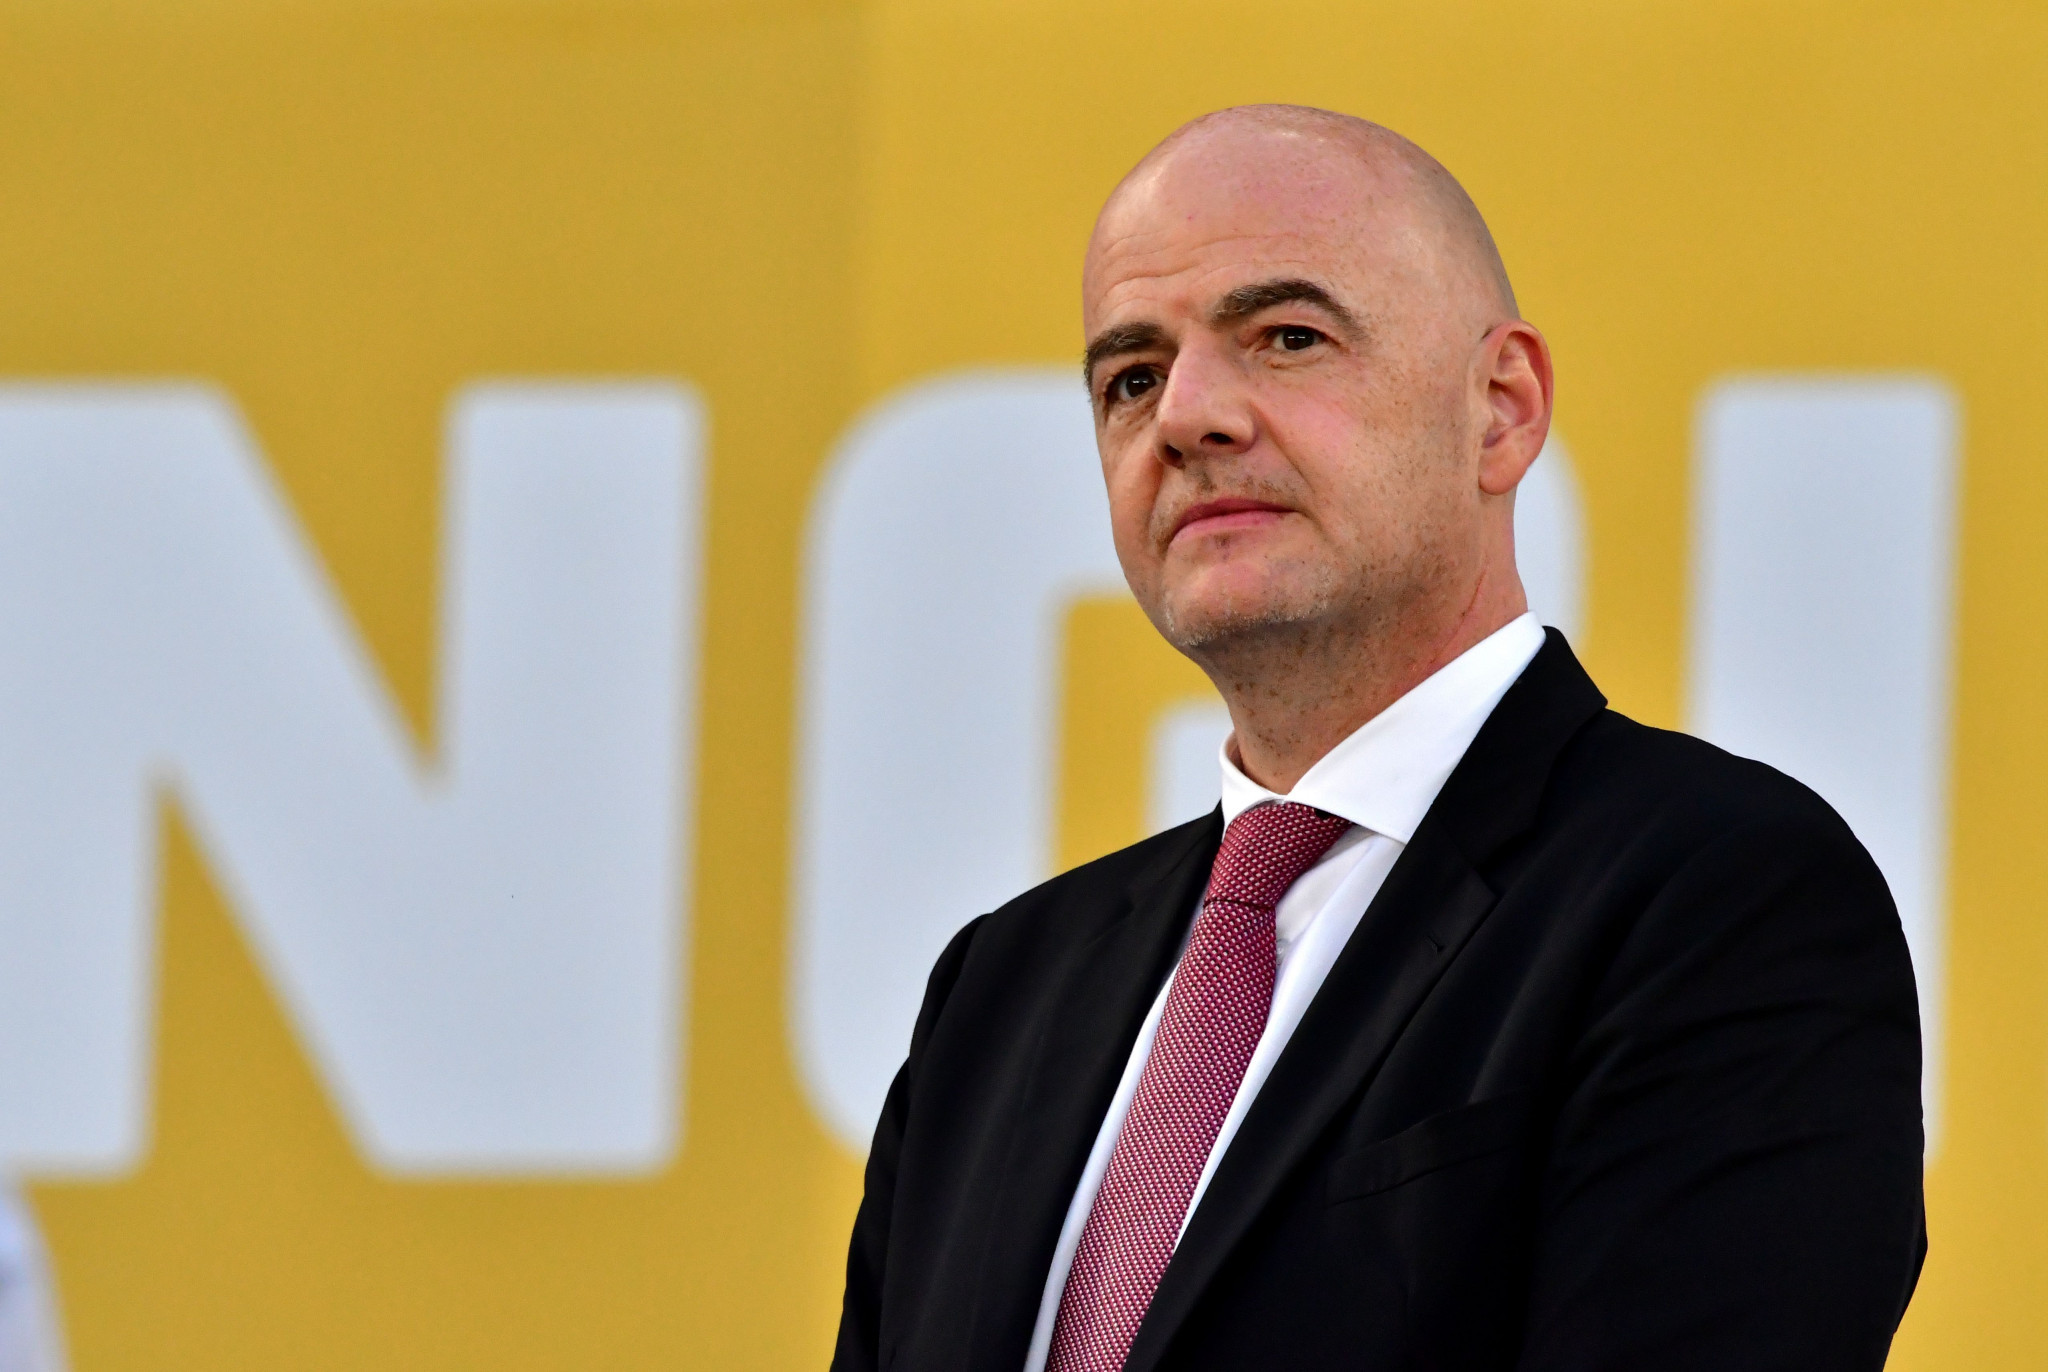 Infantino set for re-election as FIFA President